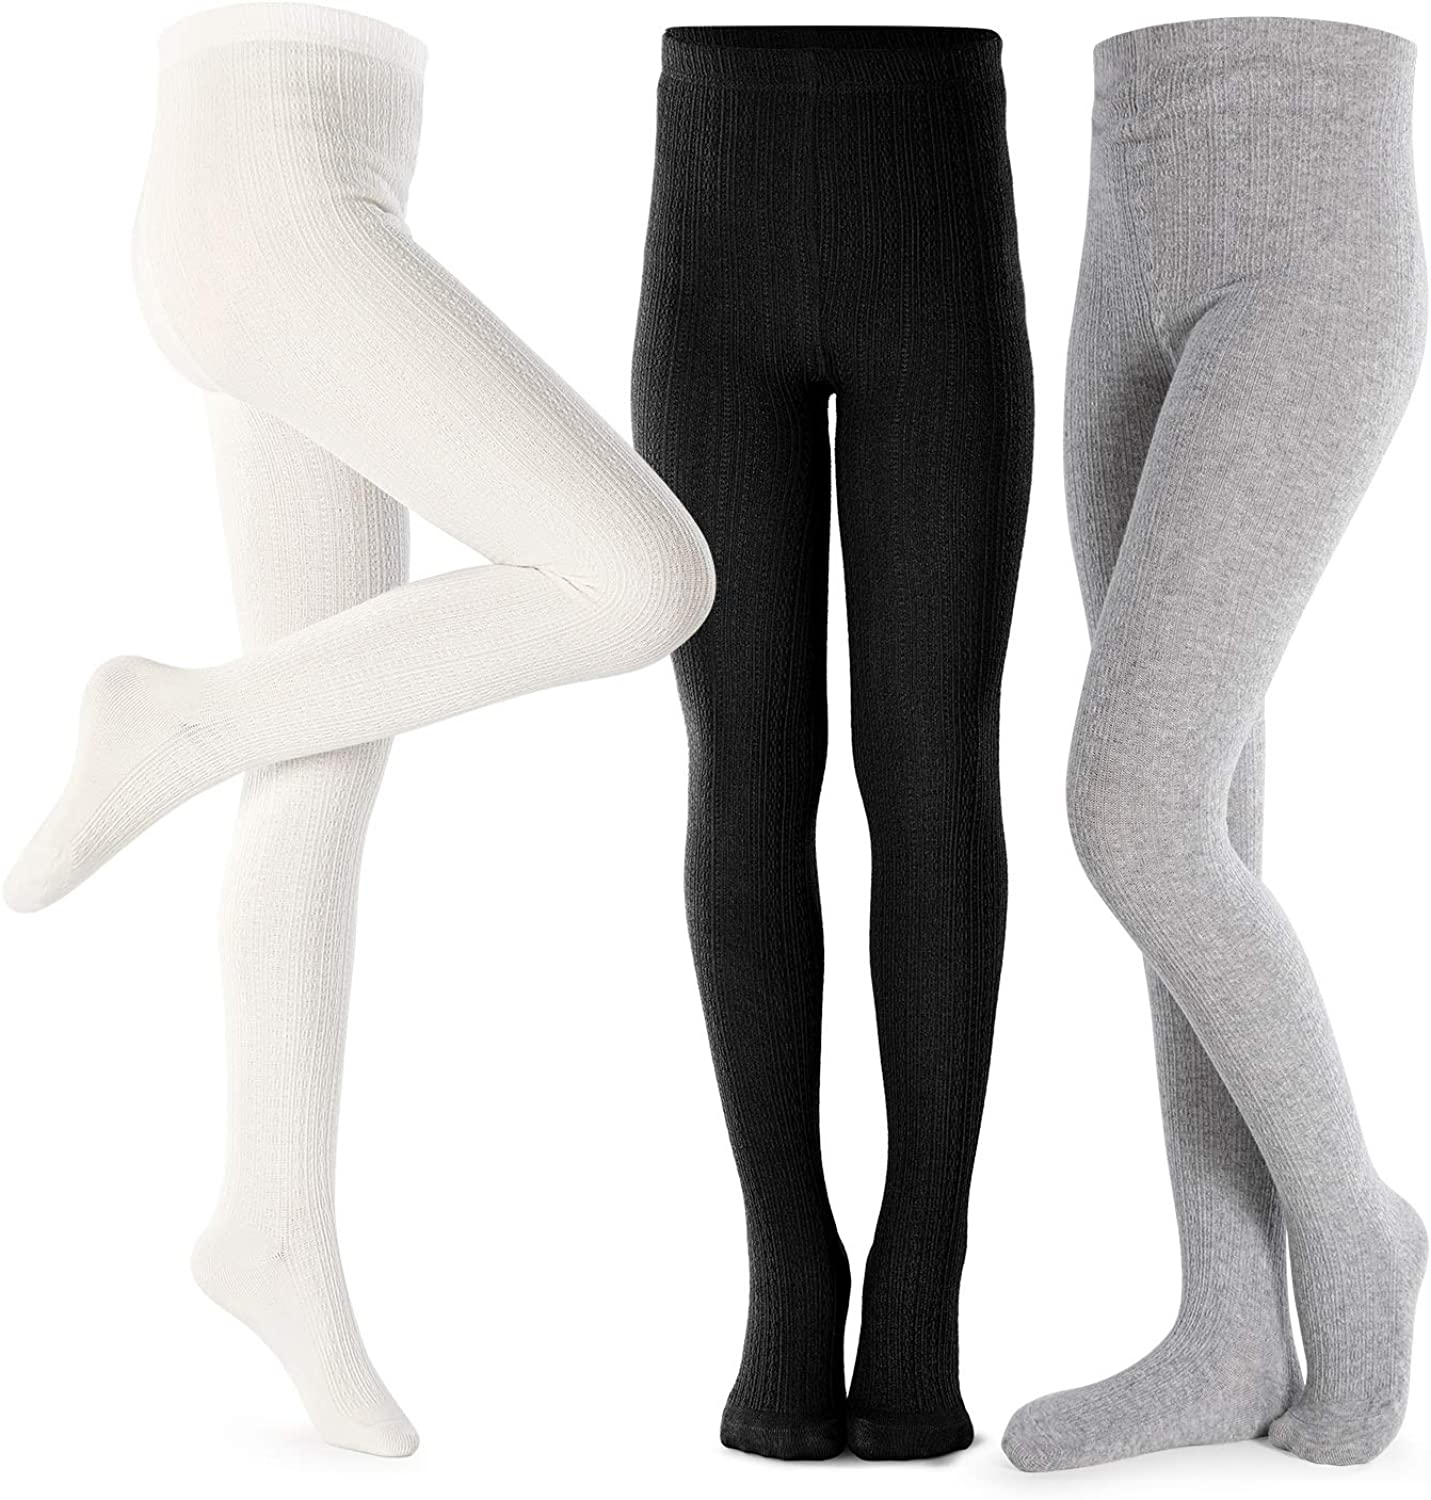 Girls Tights Toddler Cable Knit Cotton Footed Seamless Dance Ballet Baby Girls' Leggings 3 Pack: Clothing